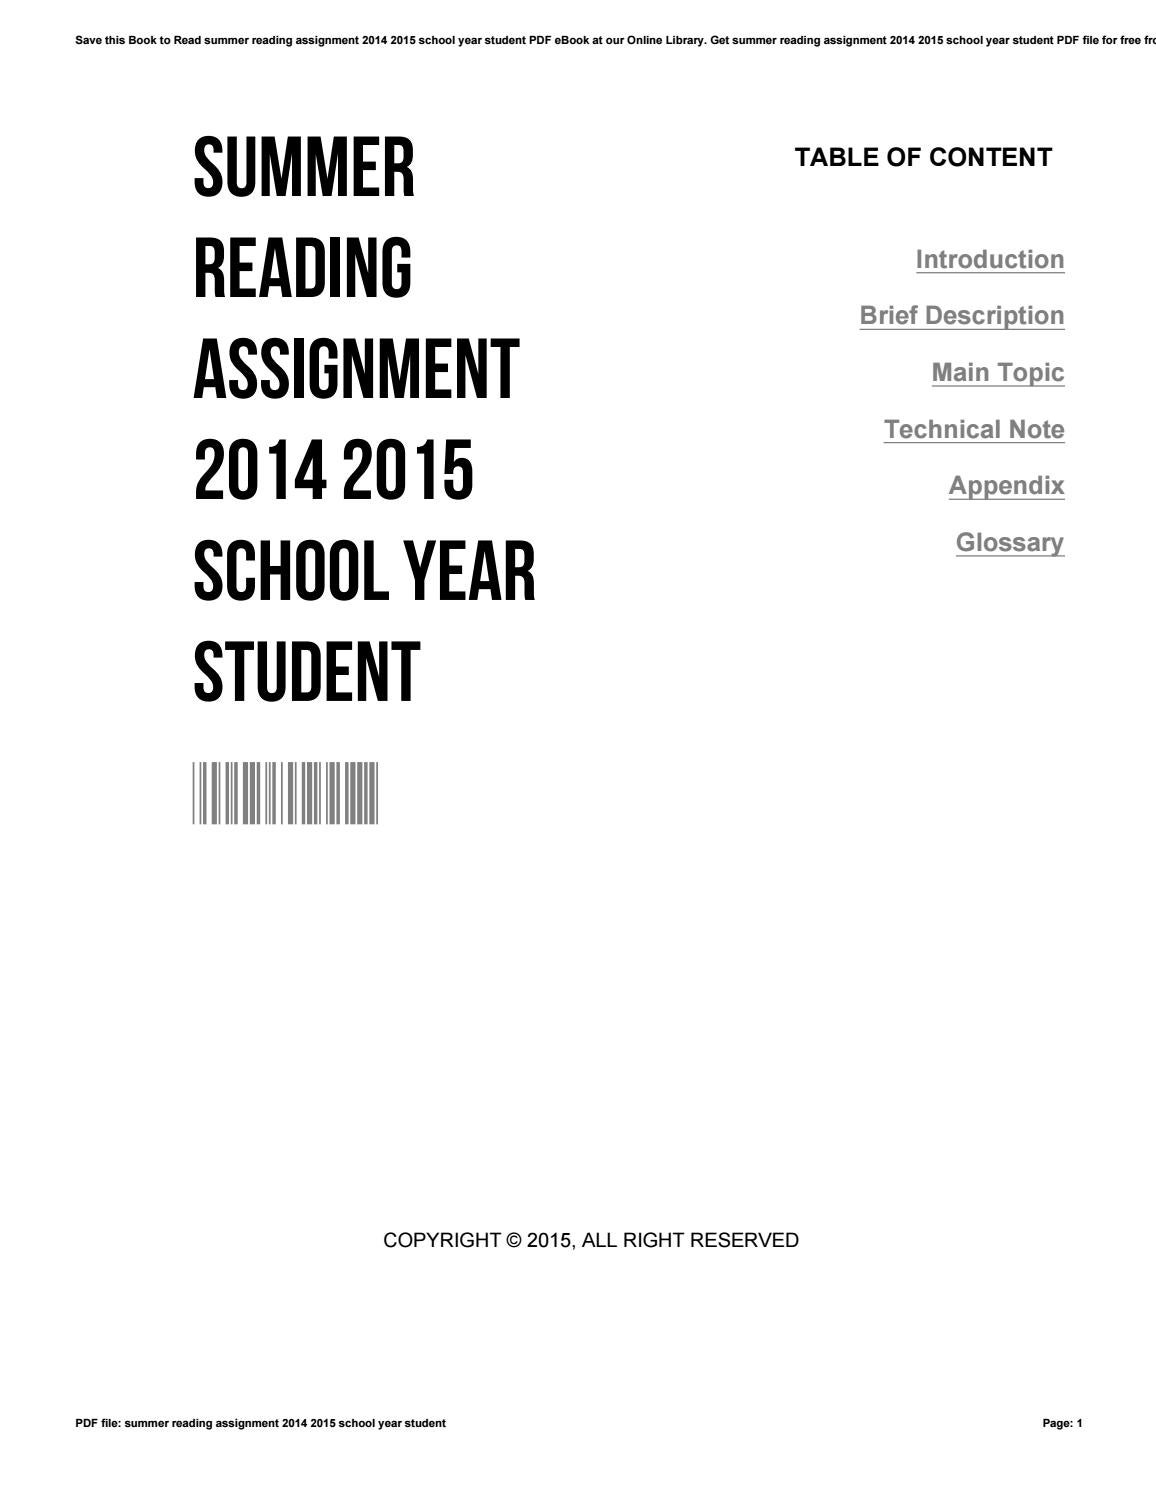 Summer reading assignment 2014 2015 school year student by